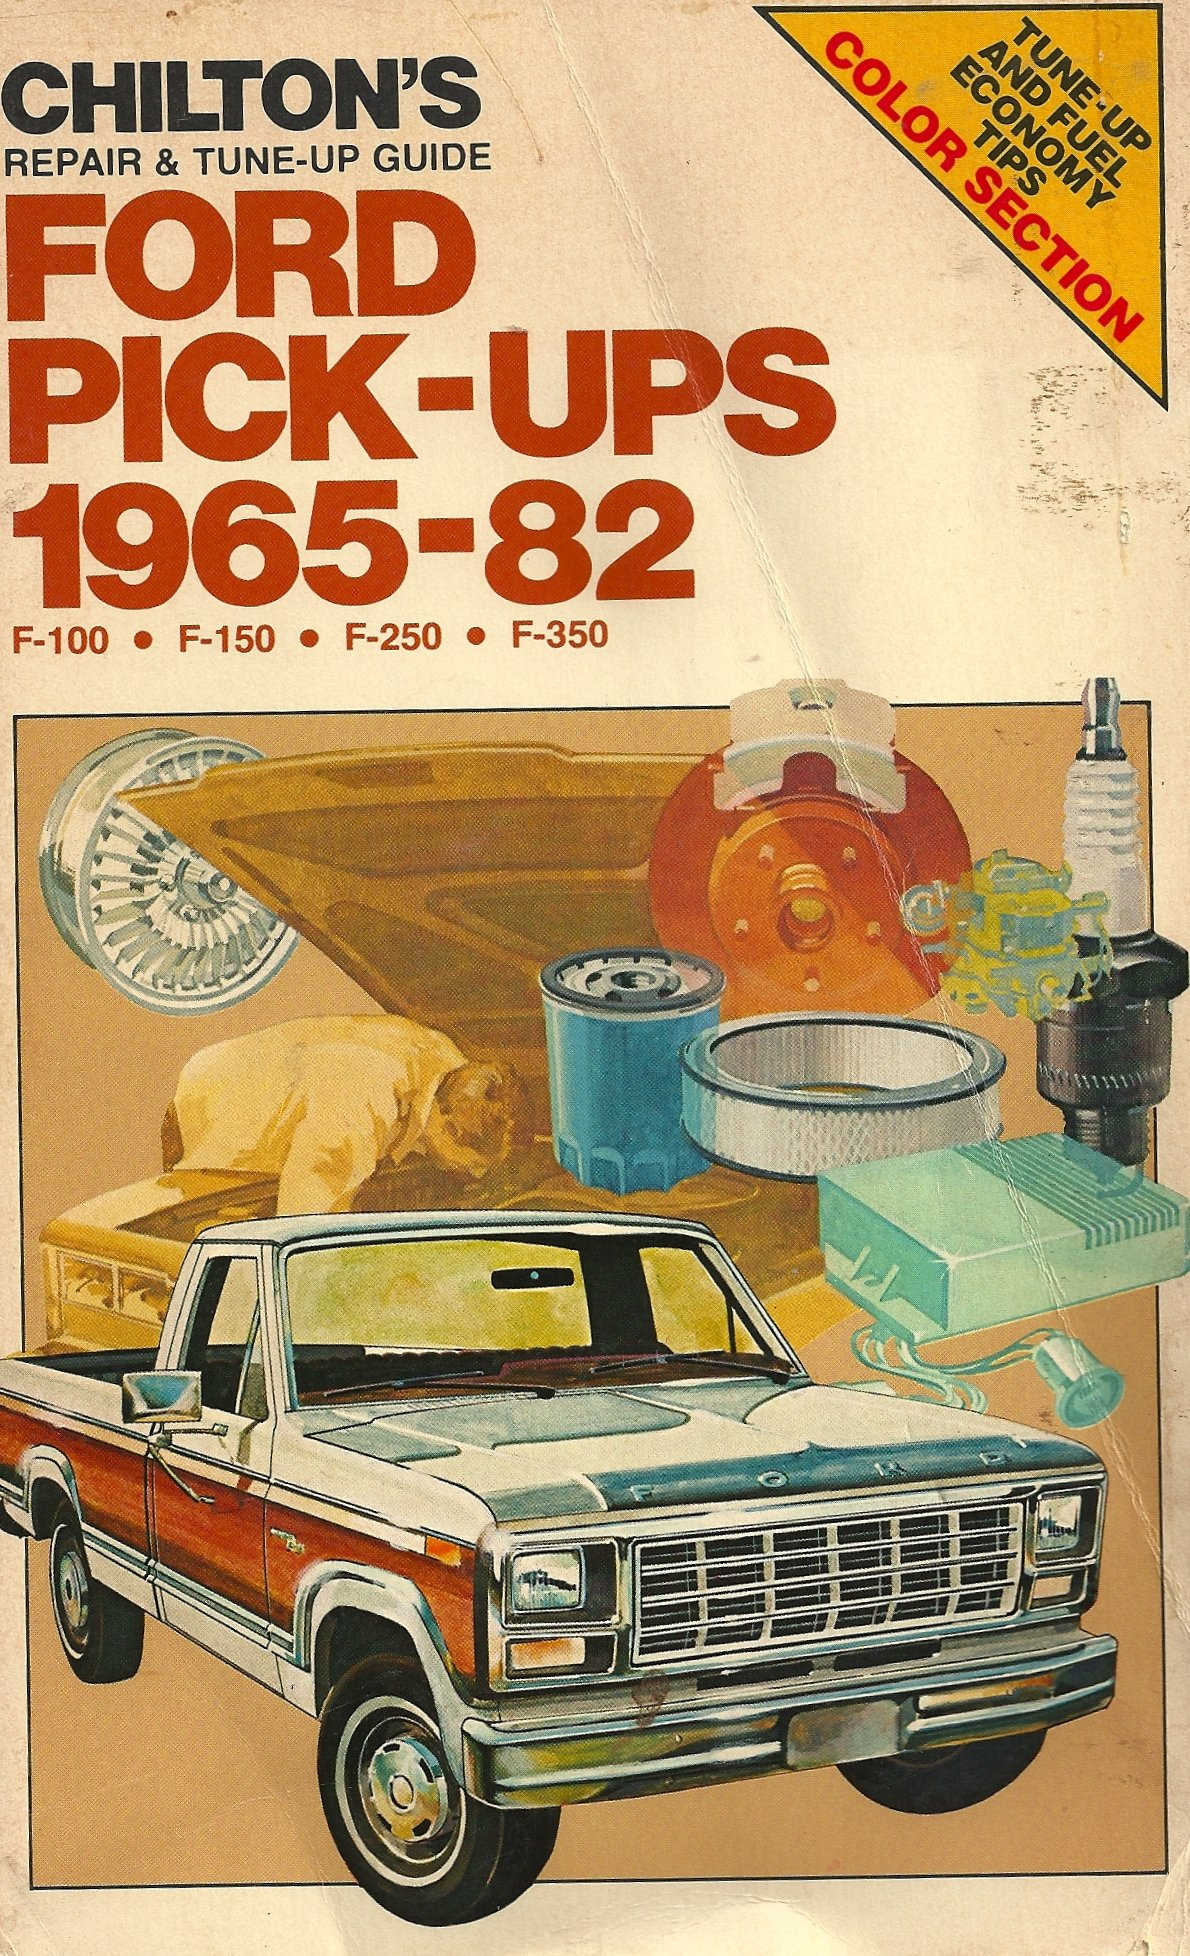 Chilton's repair & tune-up guide, Ford pick-ups, 1965-82: F-100, F-150,  F-250, F-350: 9780801971662: Amazon.com: Books